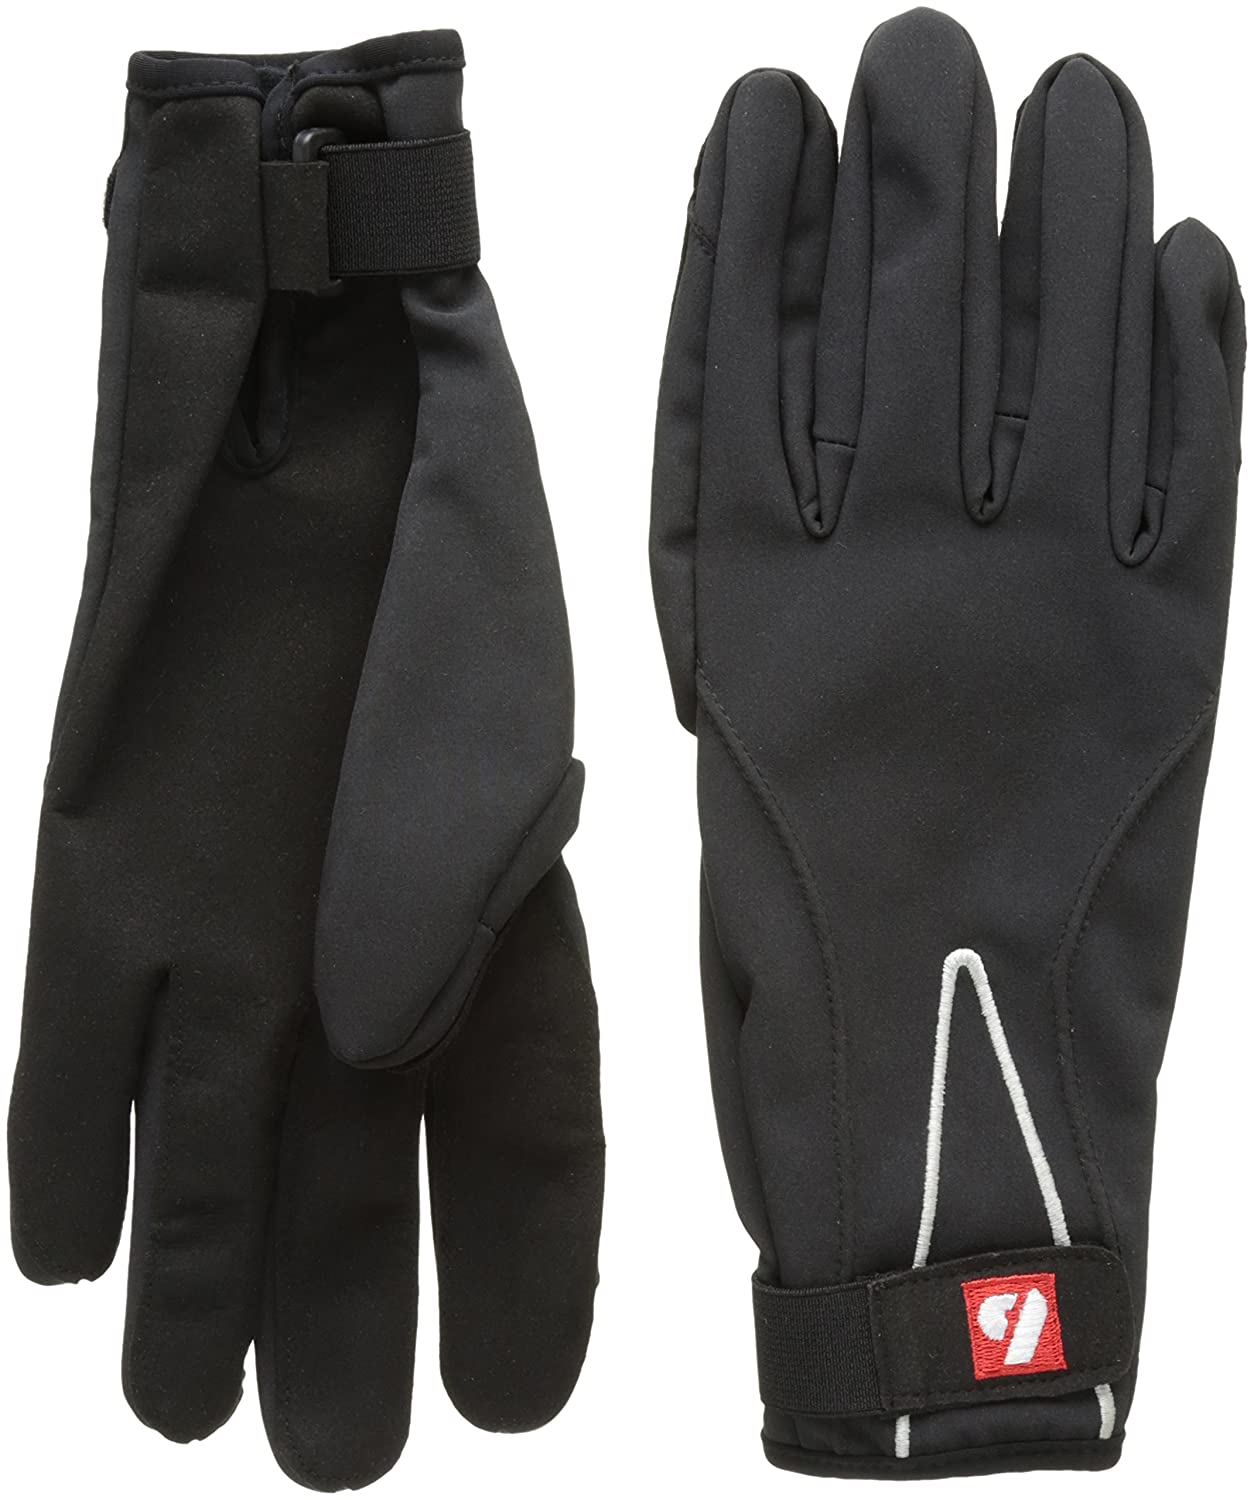 NBG-01 Cross country race gloves Barnett